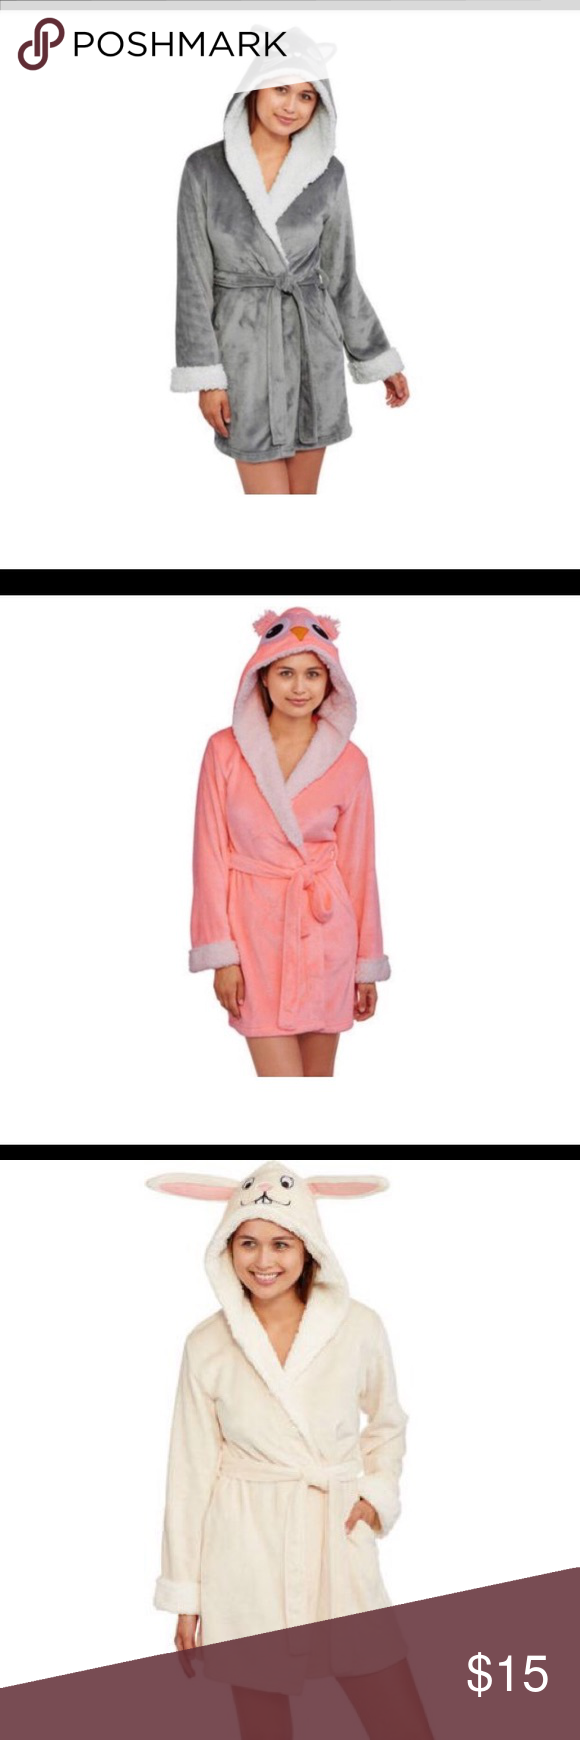 c2e5bafde99 Body candy Girls sleepwear robe. New with tags!! Body candy - Adorable  juniors (girls) sleepwear robe. Available in gray cat